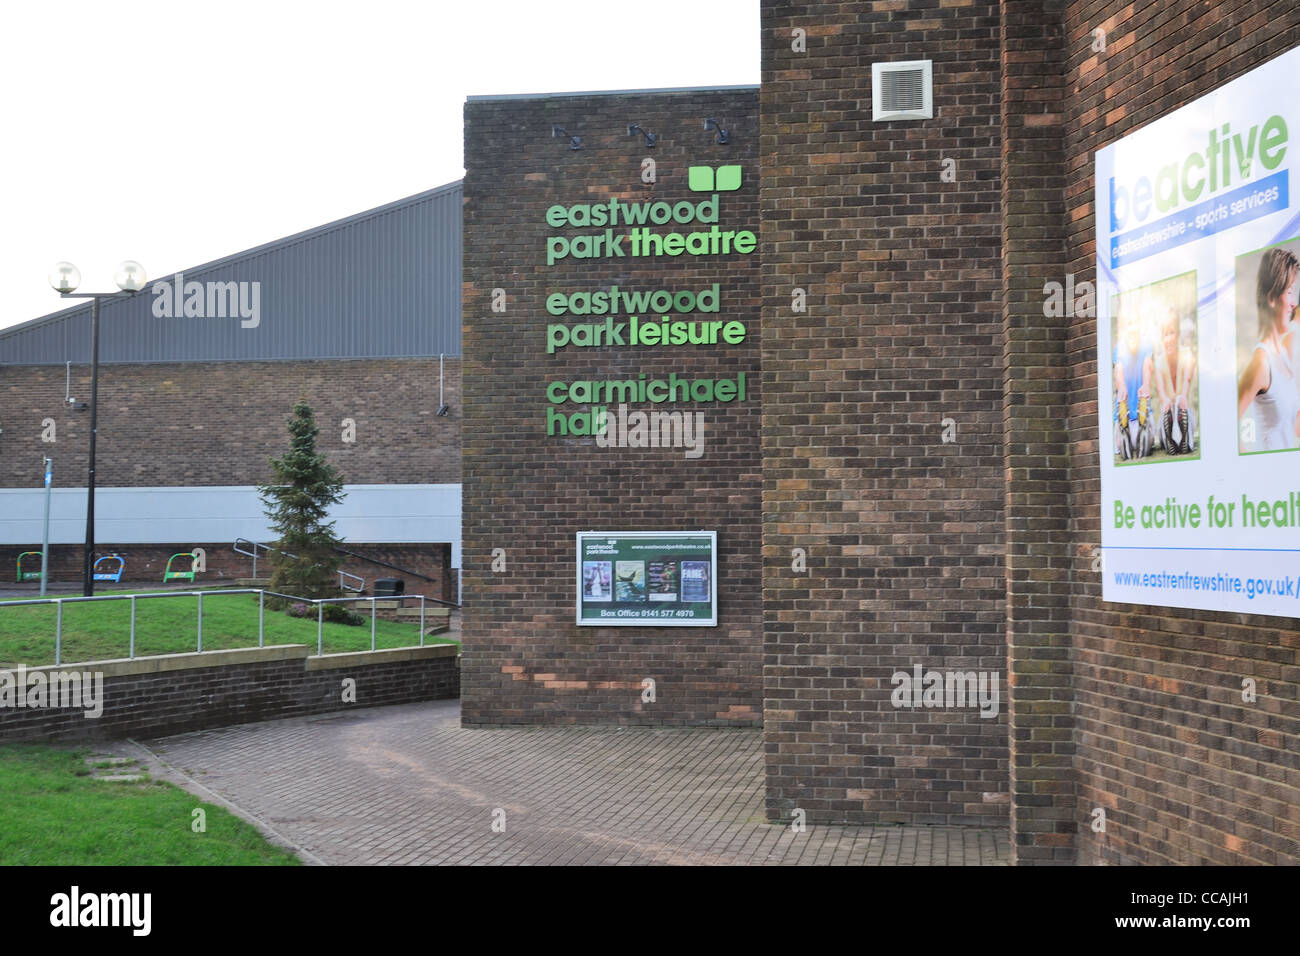 This is the Eastwood Park theatre and leisure centre, East Renfrewshire, Scotland - Stock Image